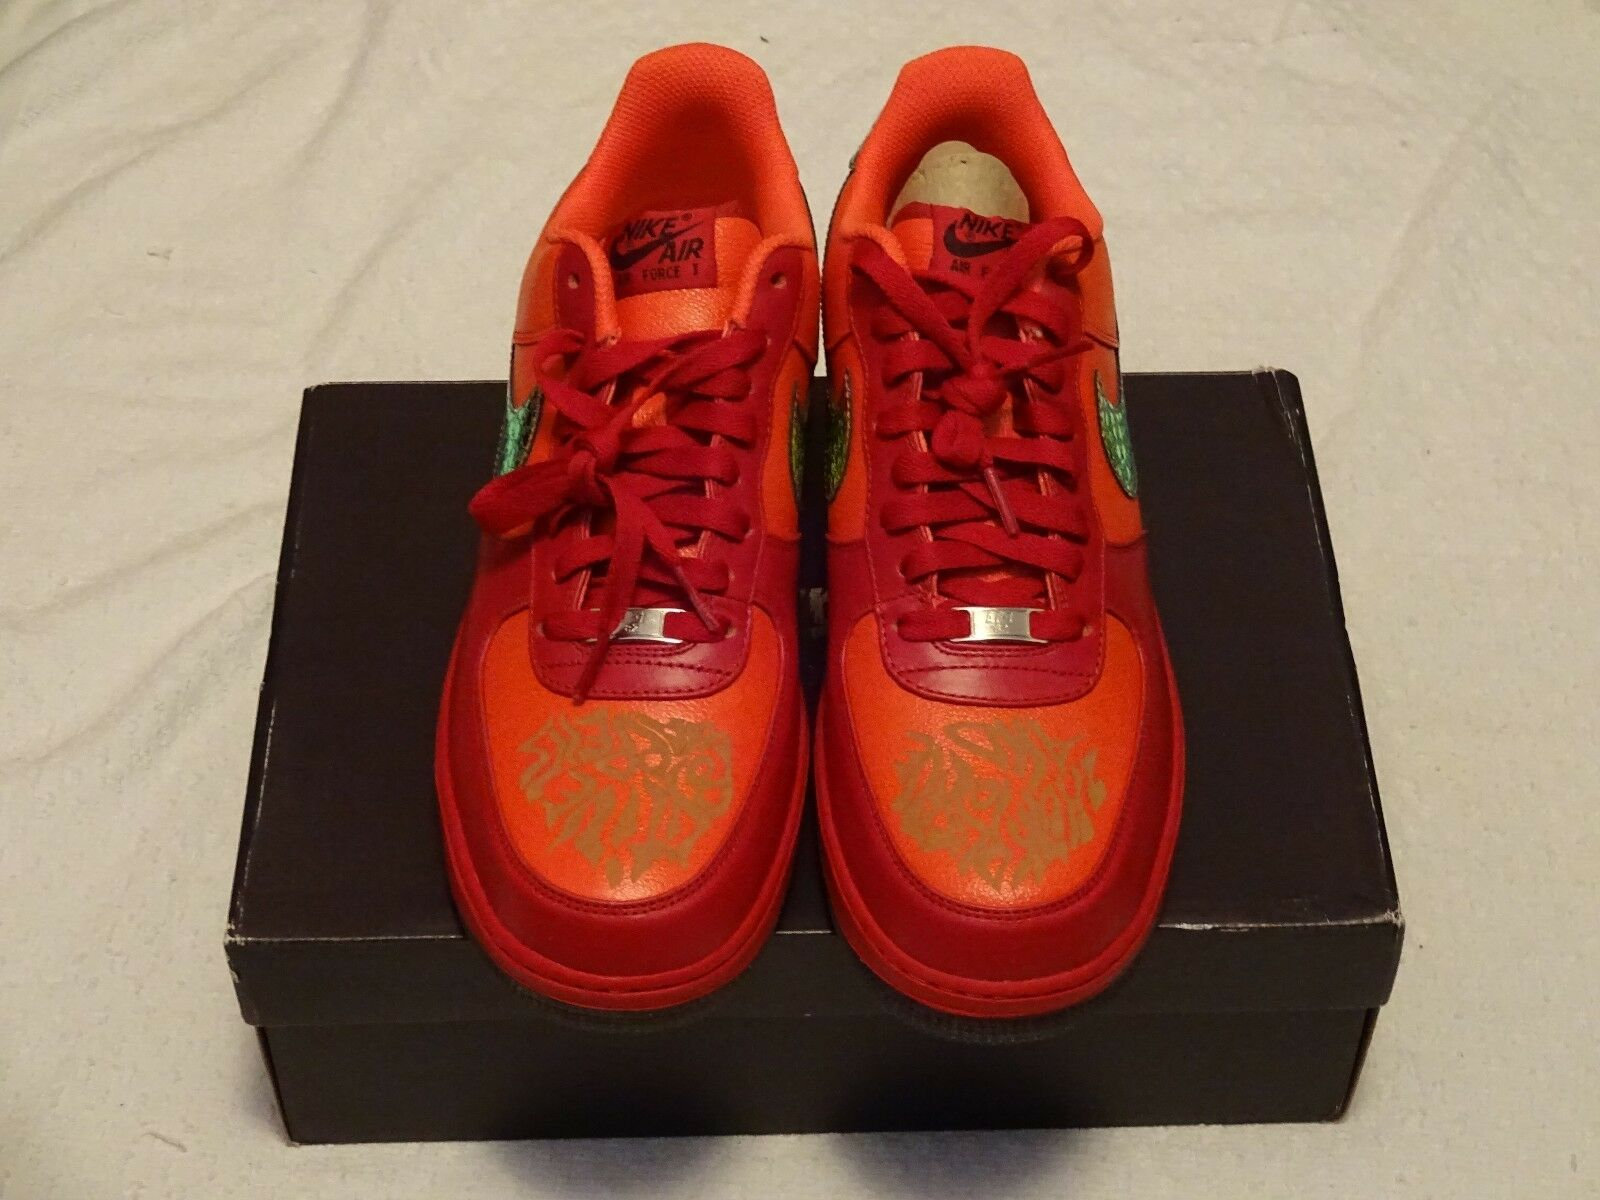 NIKE AIR FORCE 1 '07 LE DOERNBECHER LE DB Team orange Red 349440 800 Size 11